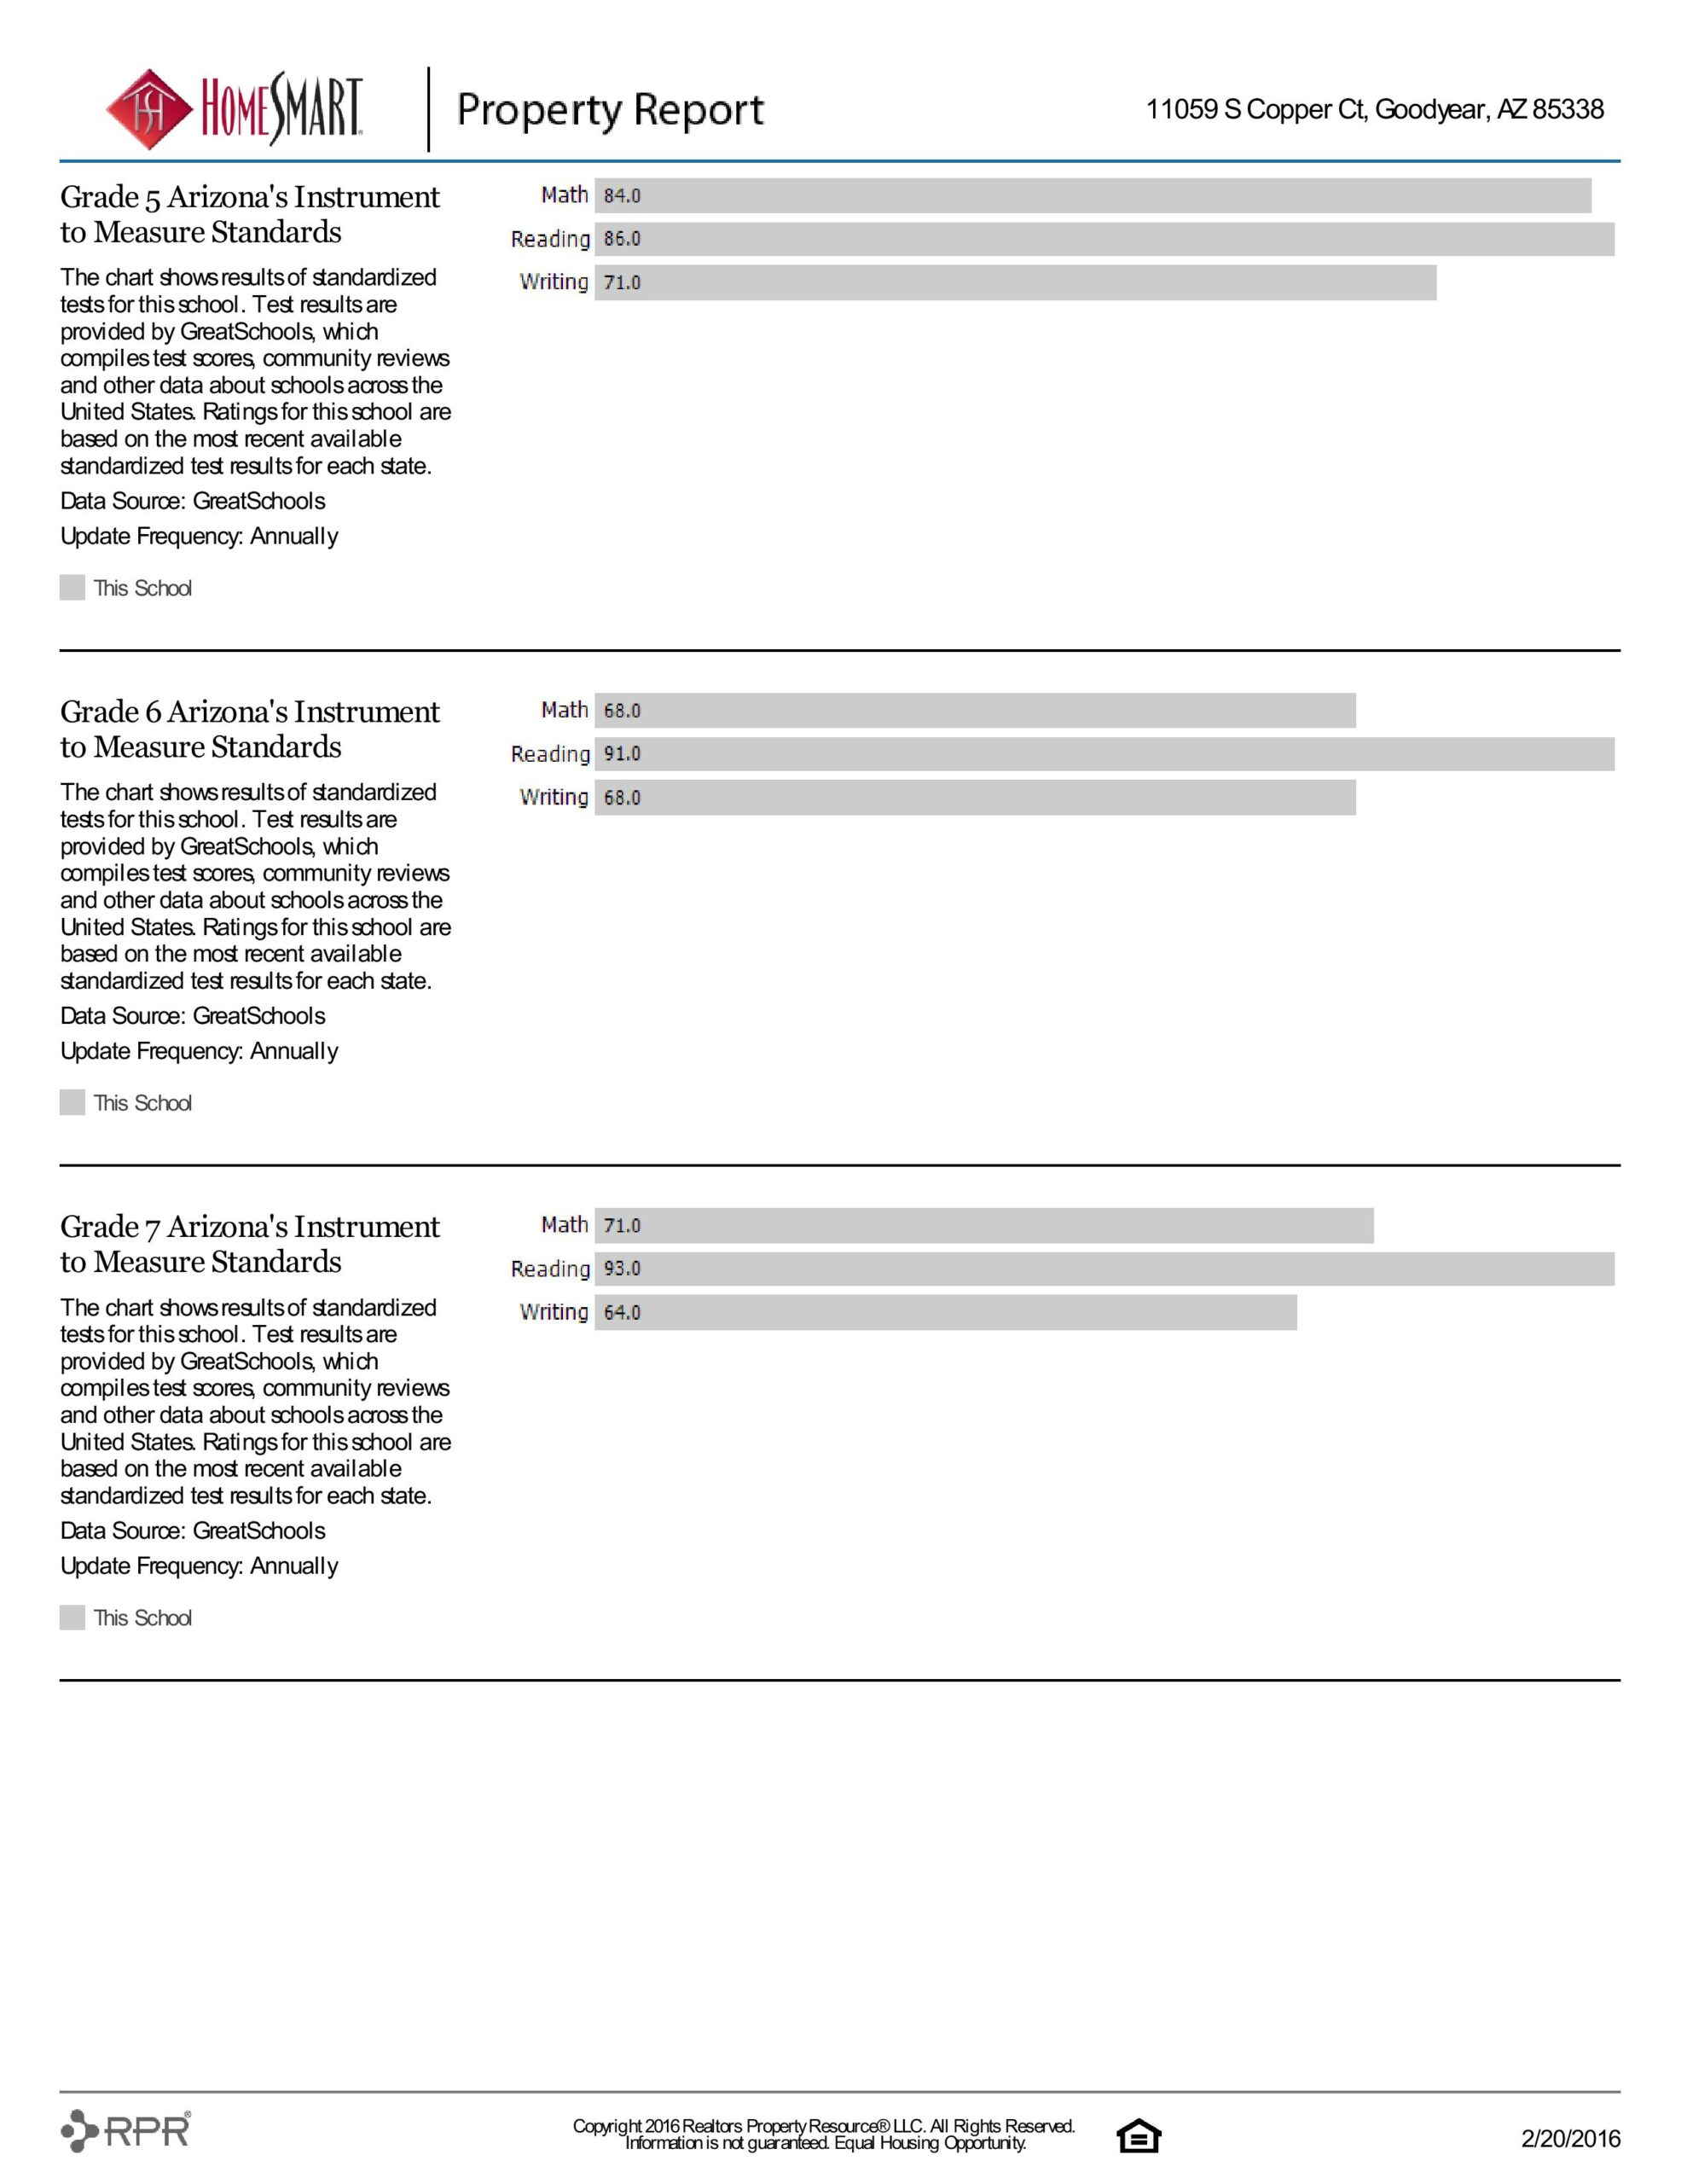 11059 S COPPER CT PROPERTY REPORT-page-031